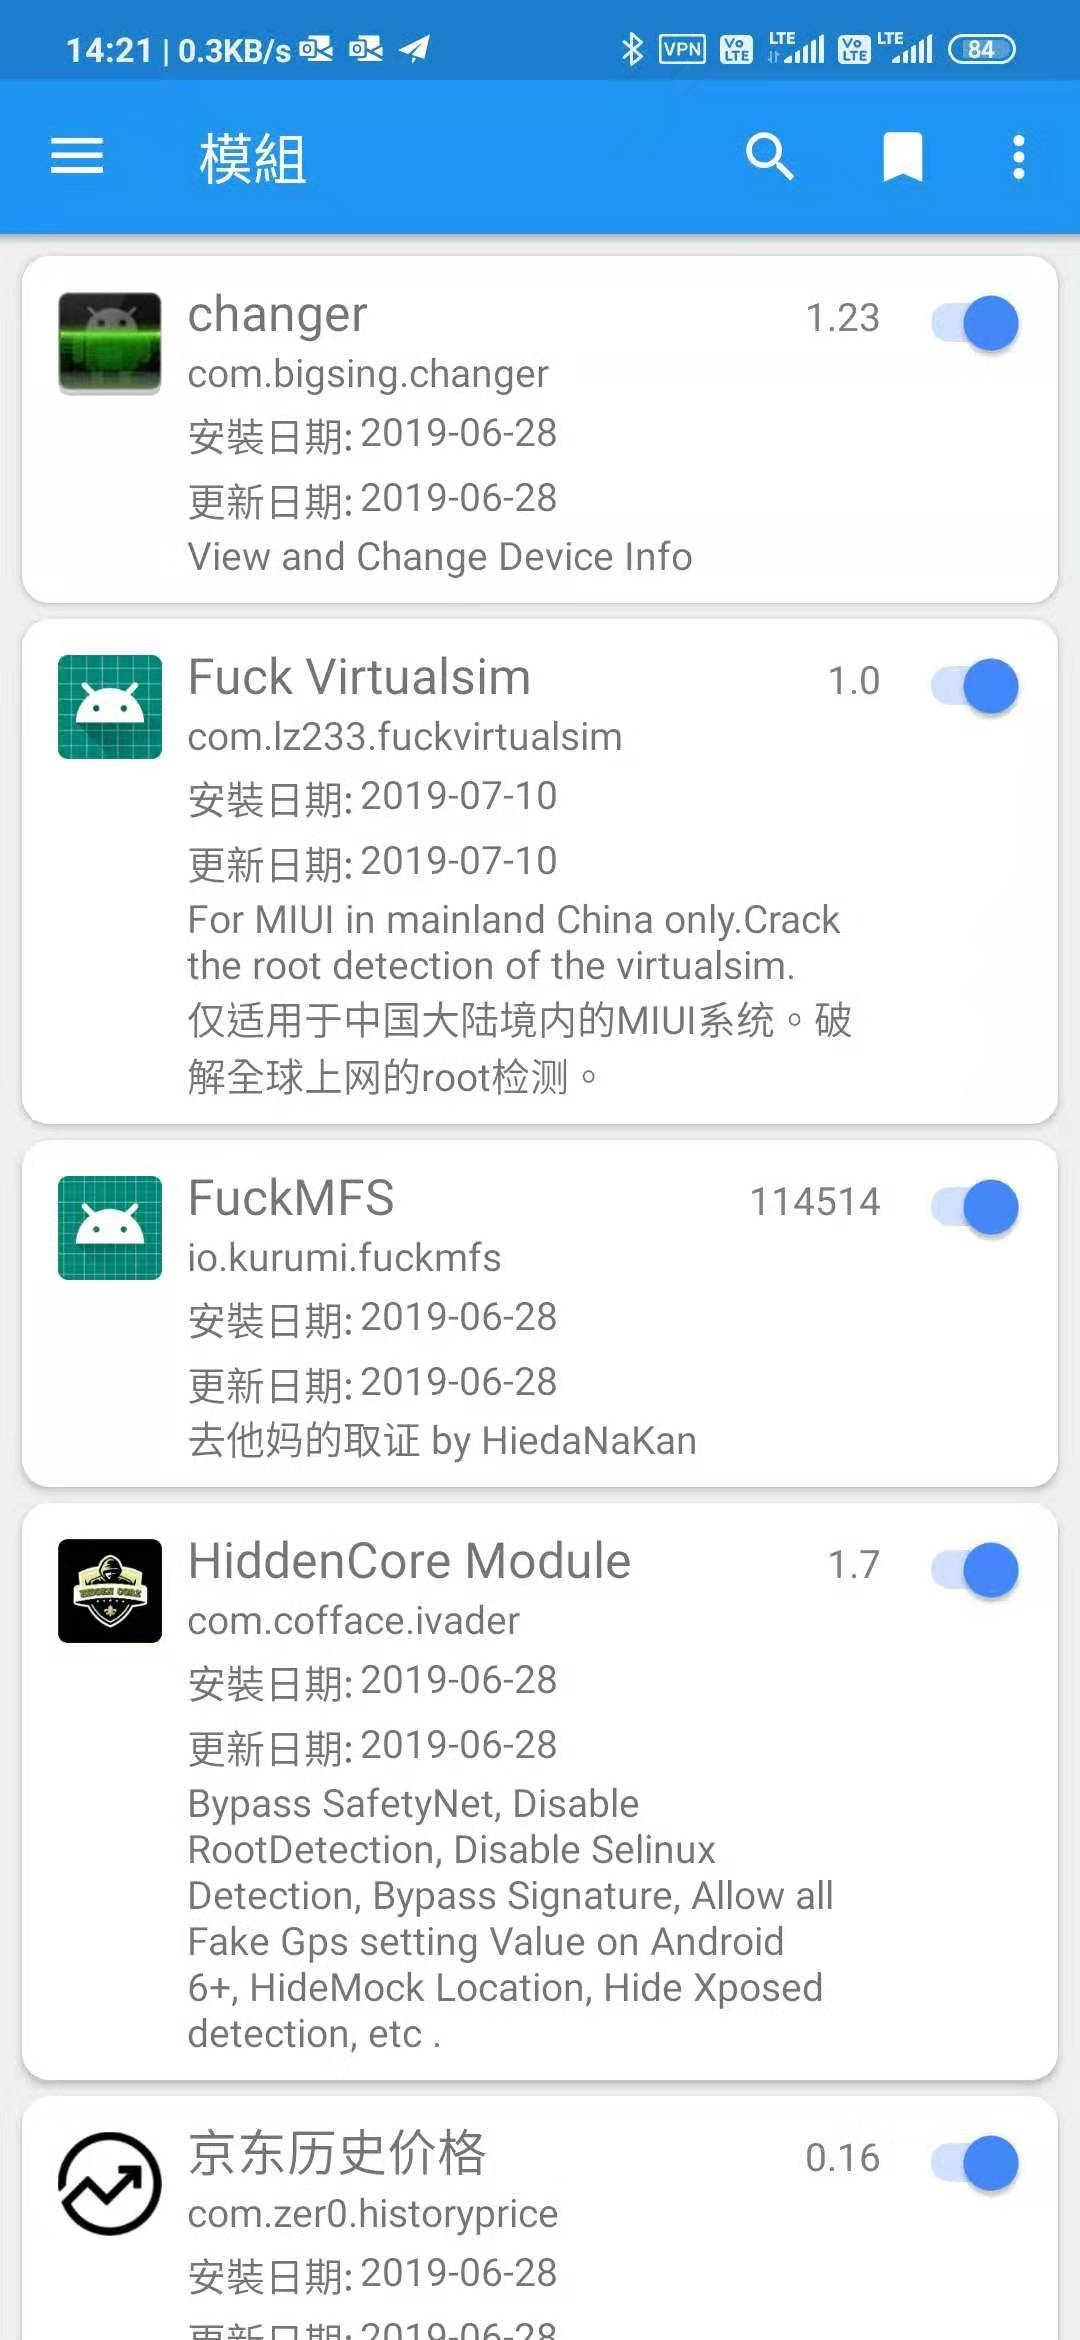 Unable to deny Superuser request of WeChat · Issue #1684 · topjohnwu